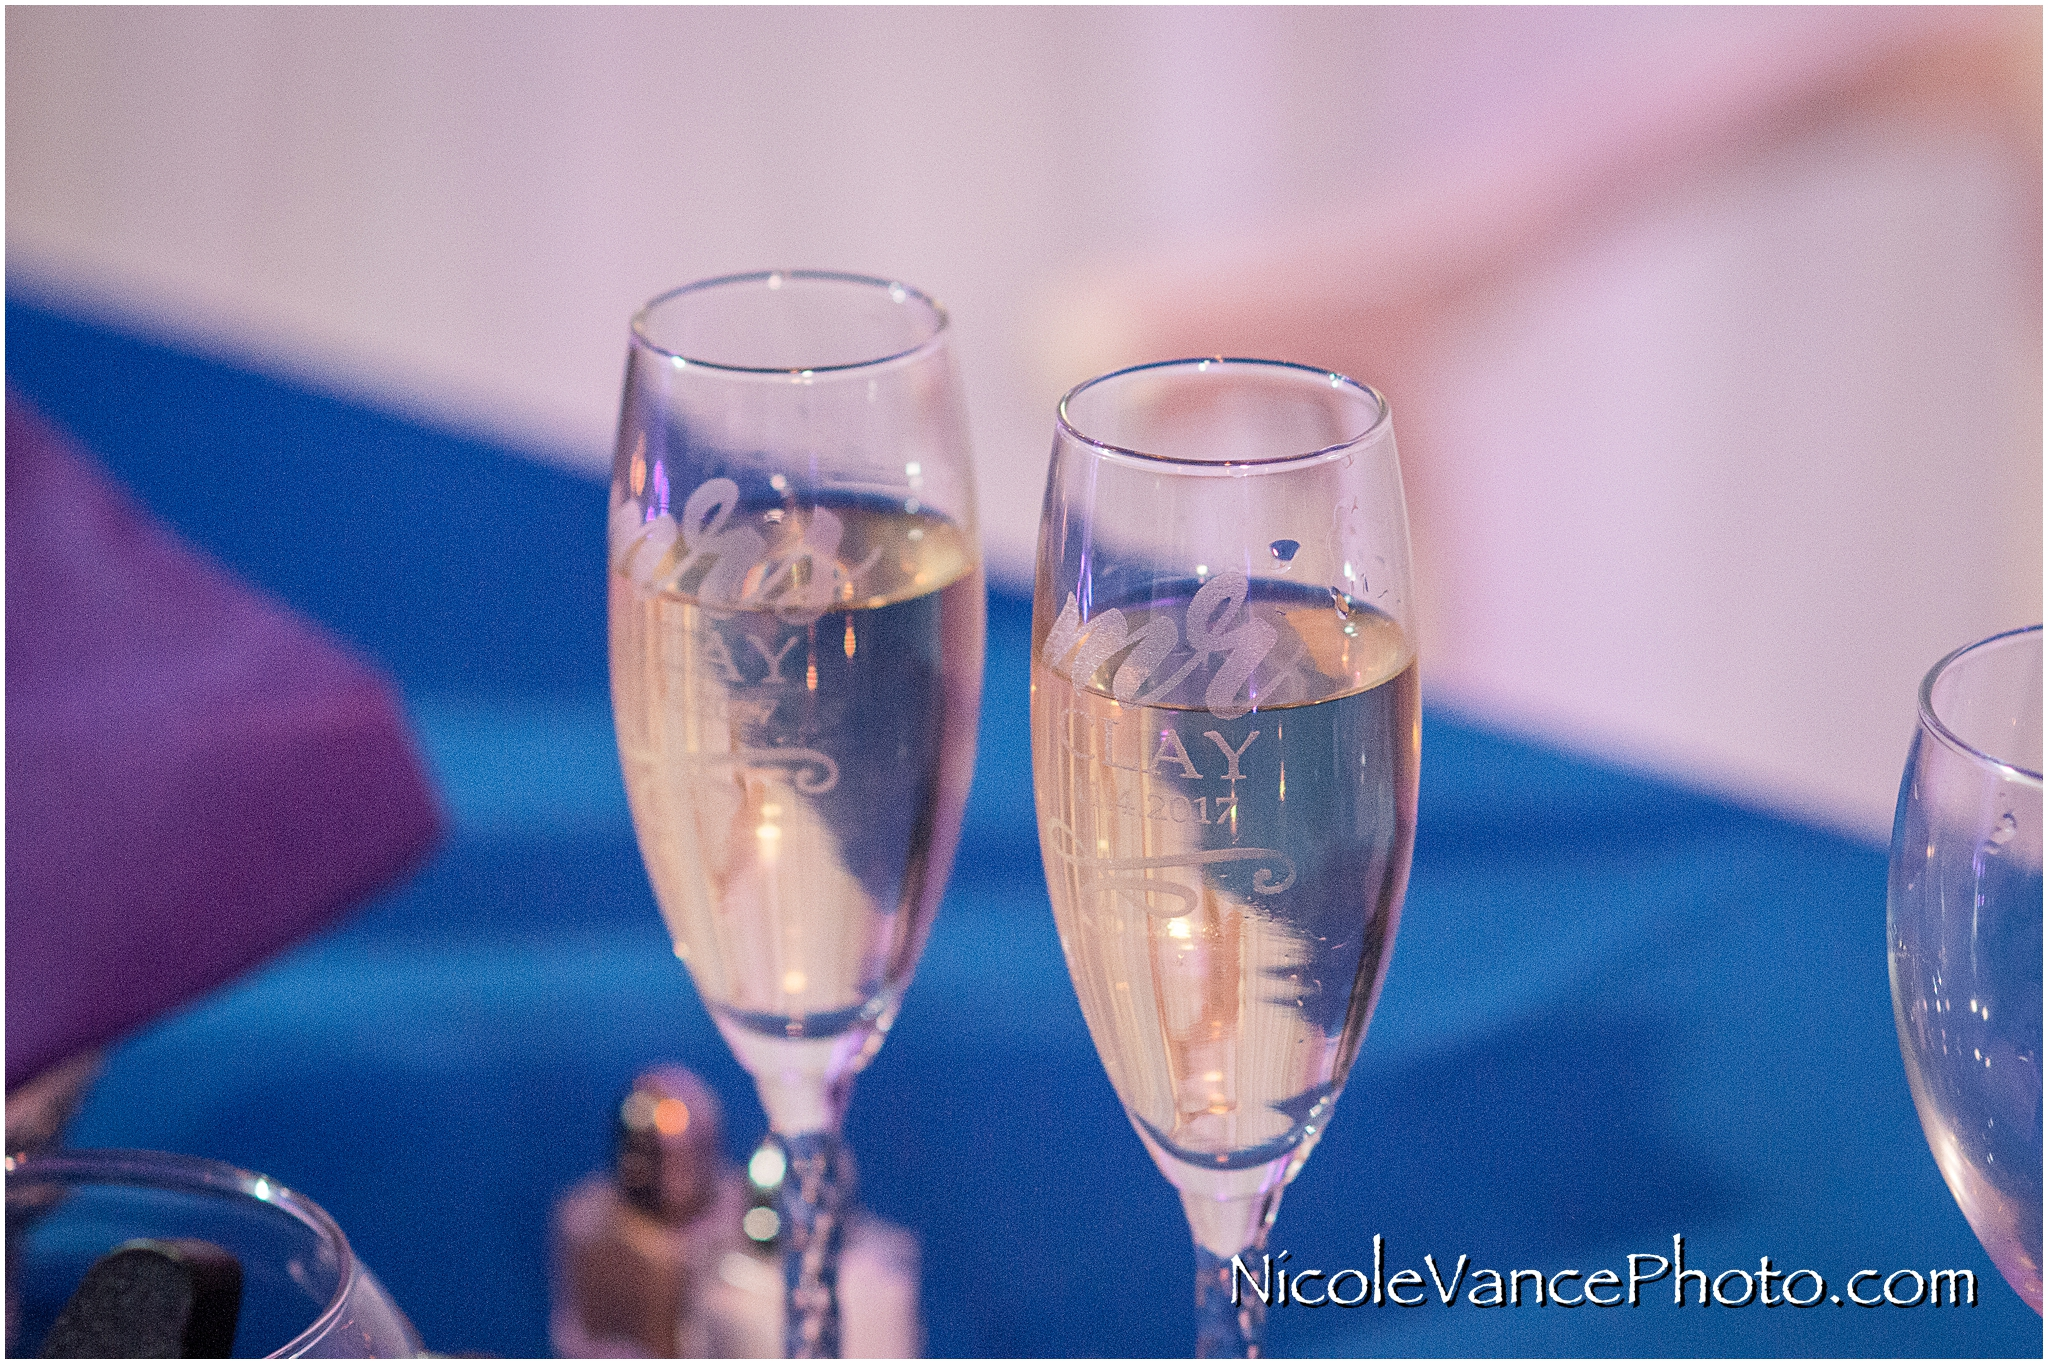 Etched champagne glasses await toasts at the wedding reception at The Brownstone.